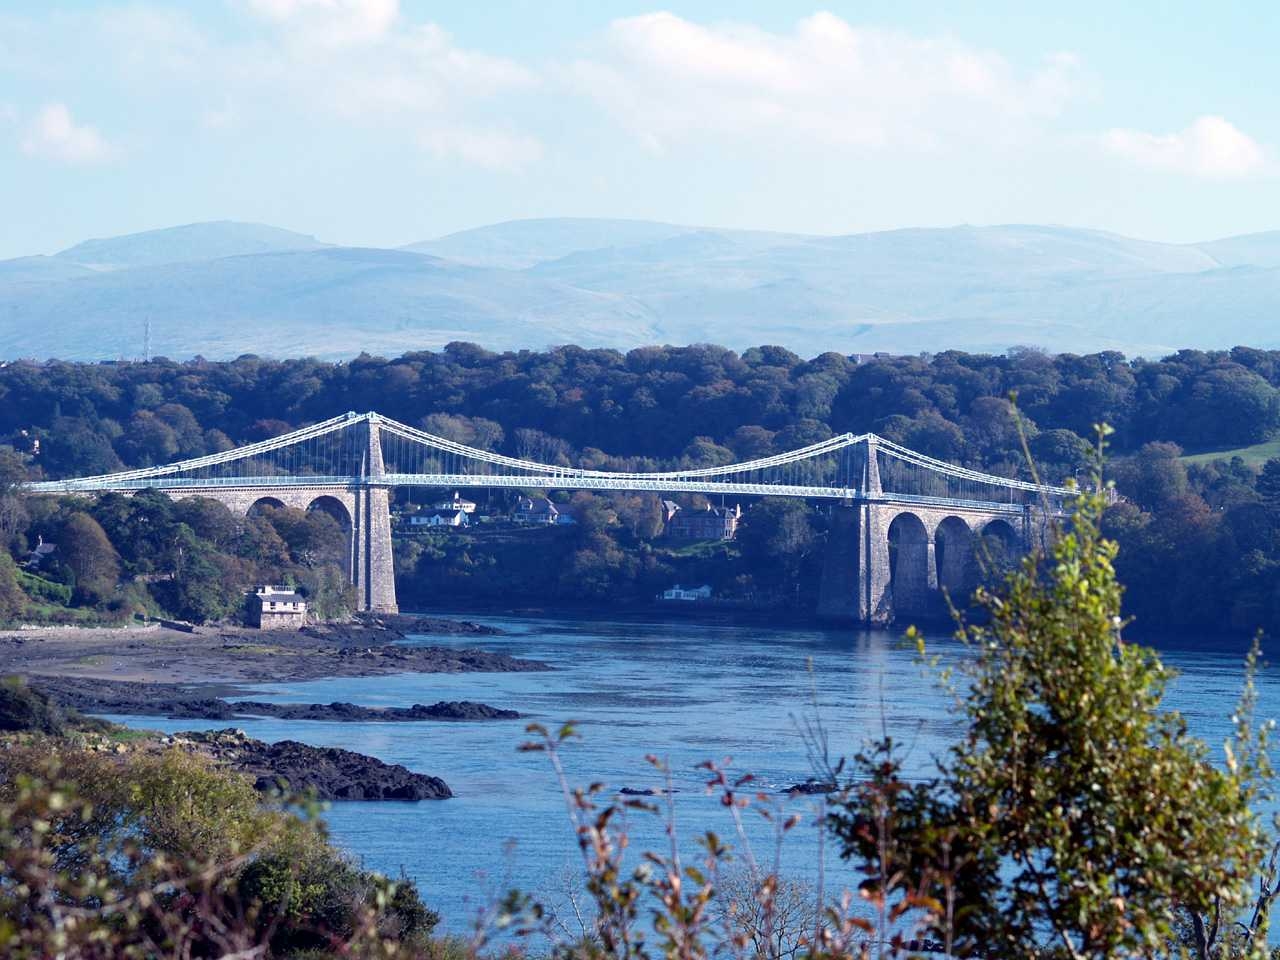 Thomas Telford's Suspension Bridge